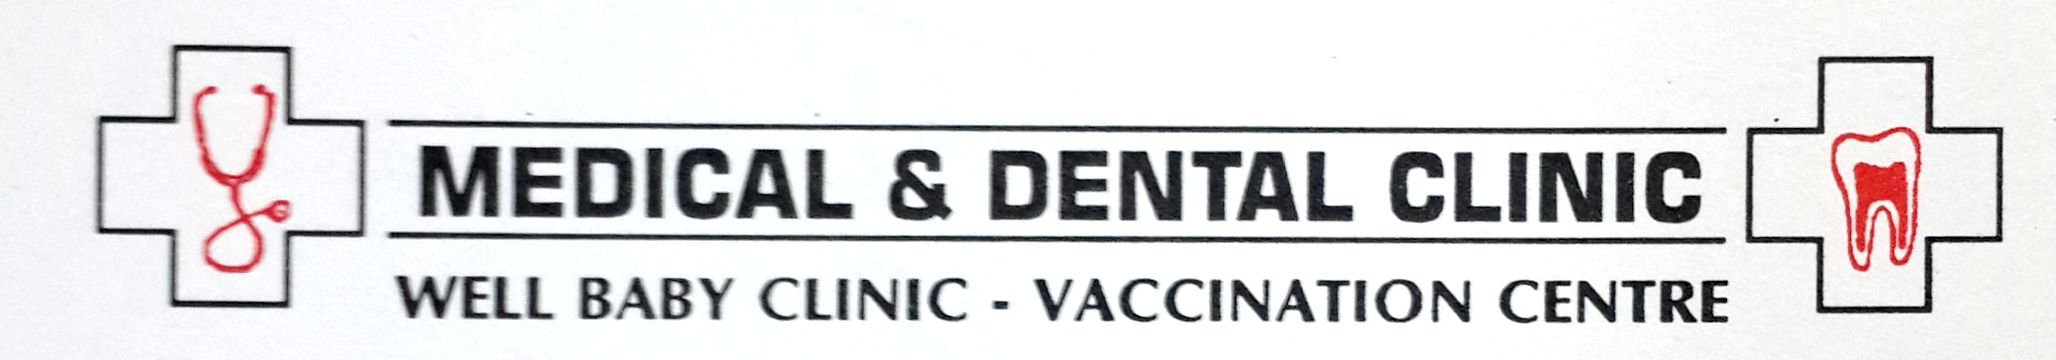 Medical and Dental Clinic